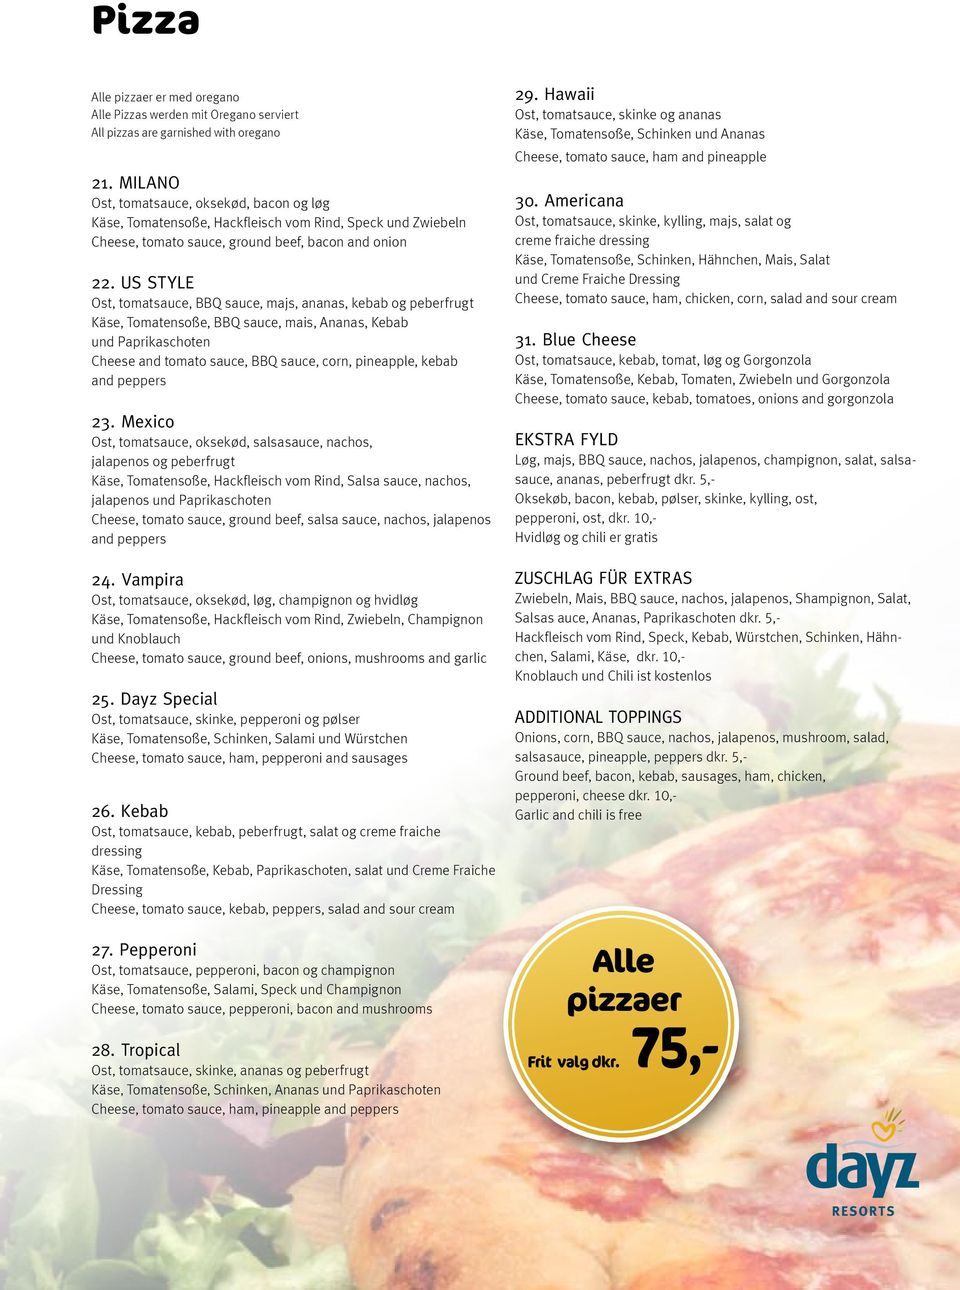 US STYLE Ost, tomatsauce, BBQ sauce, majs, ananas, kebab og peberfrugt Käse, Tomatensoße, BBQ sauce, mais, Ananas, Kebab und Paprikaschoten Cheese and tomato sauce, BBQ sauce, corn, pineapple, kebab